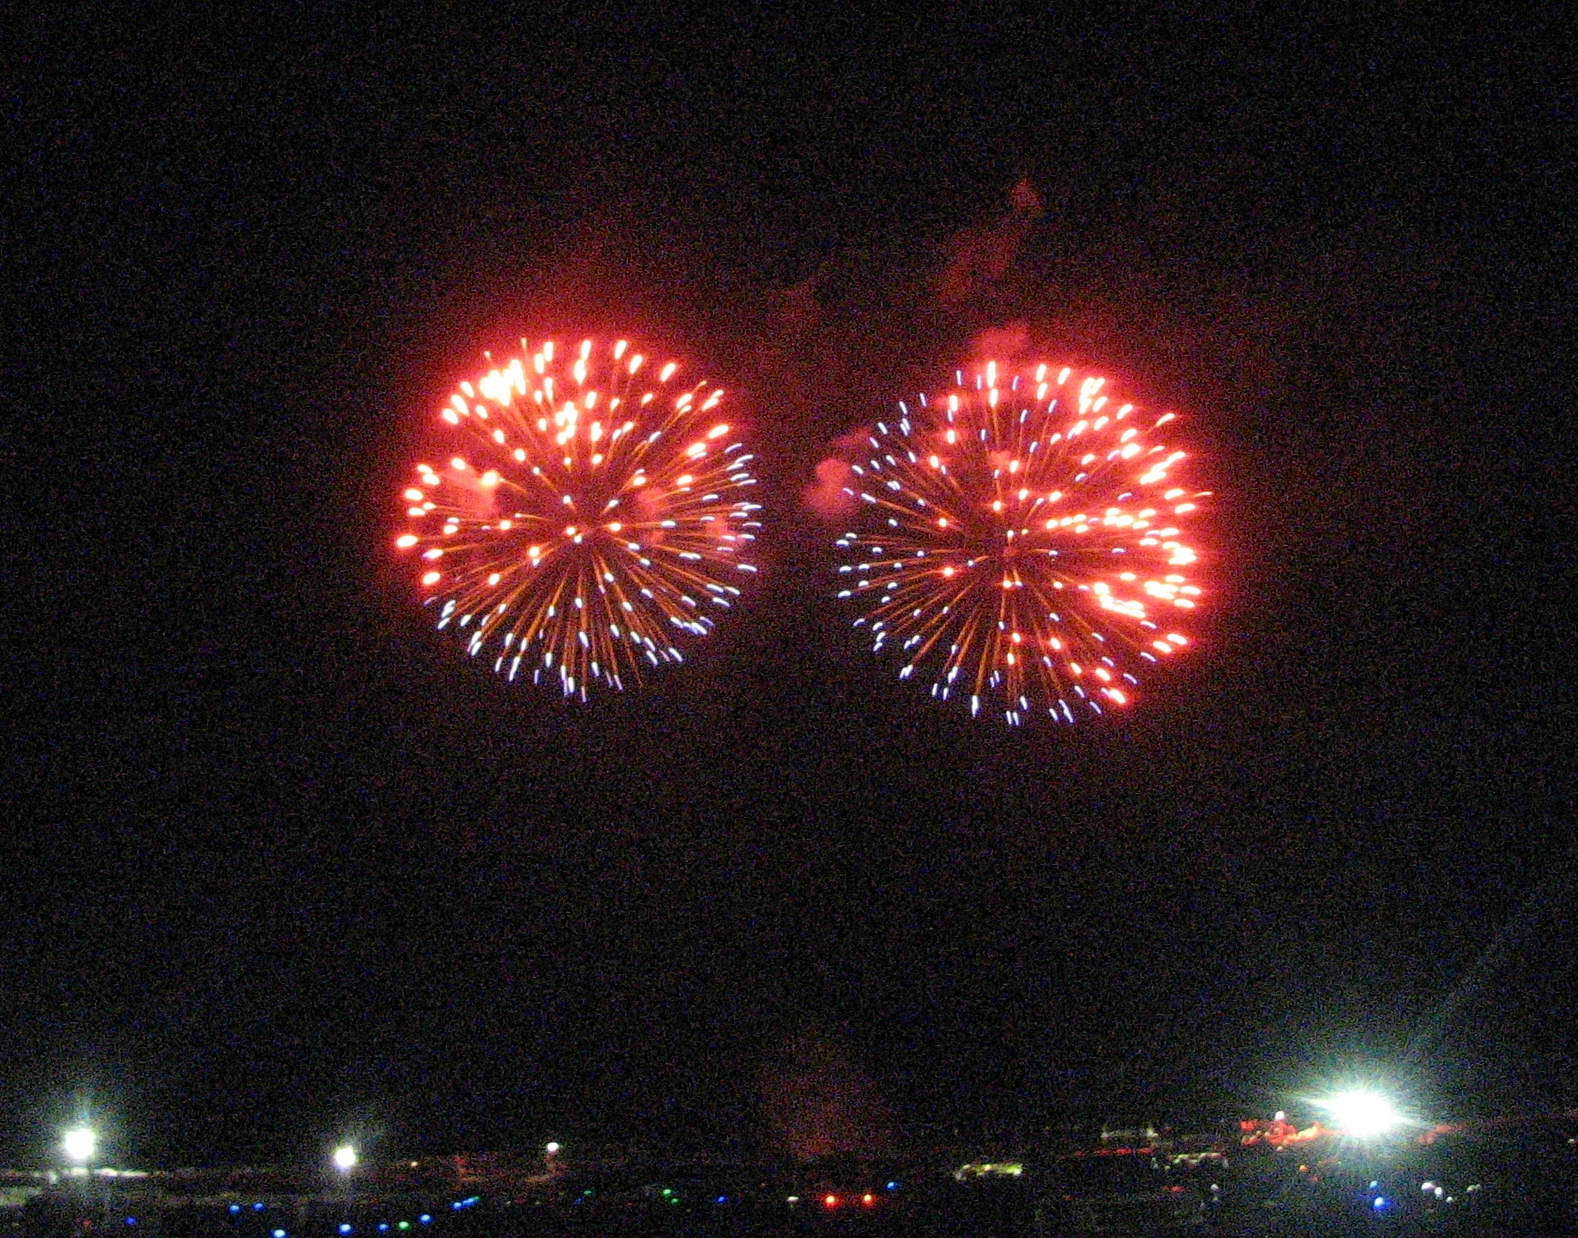 Click image for larger version  Name:fireworks2.jpg Views:83 Size:1.26 MB ID:69169